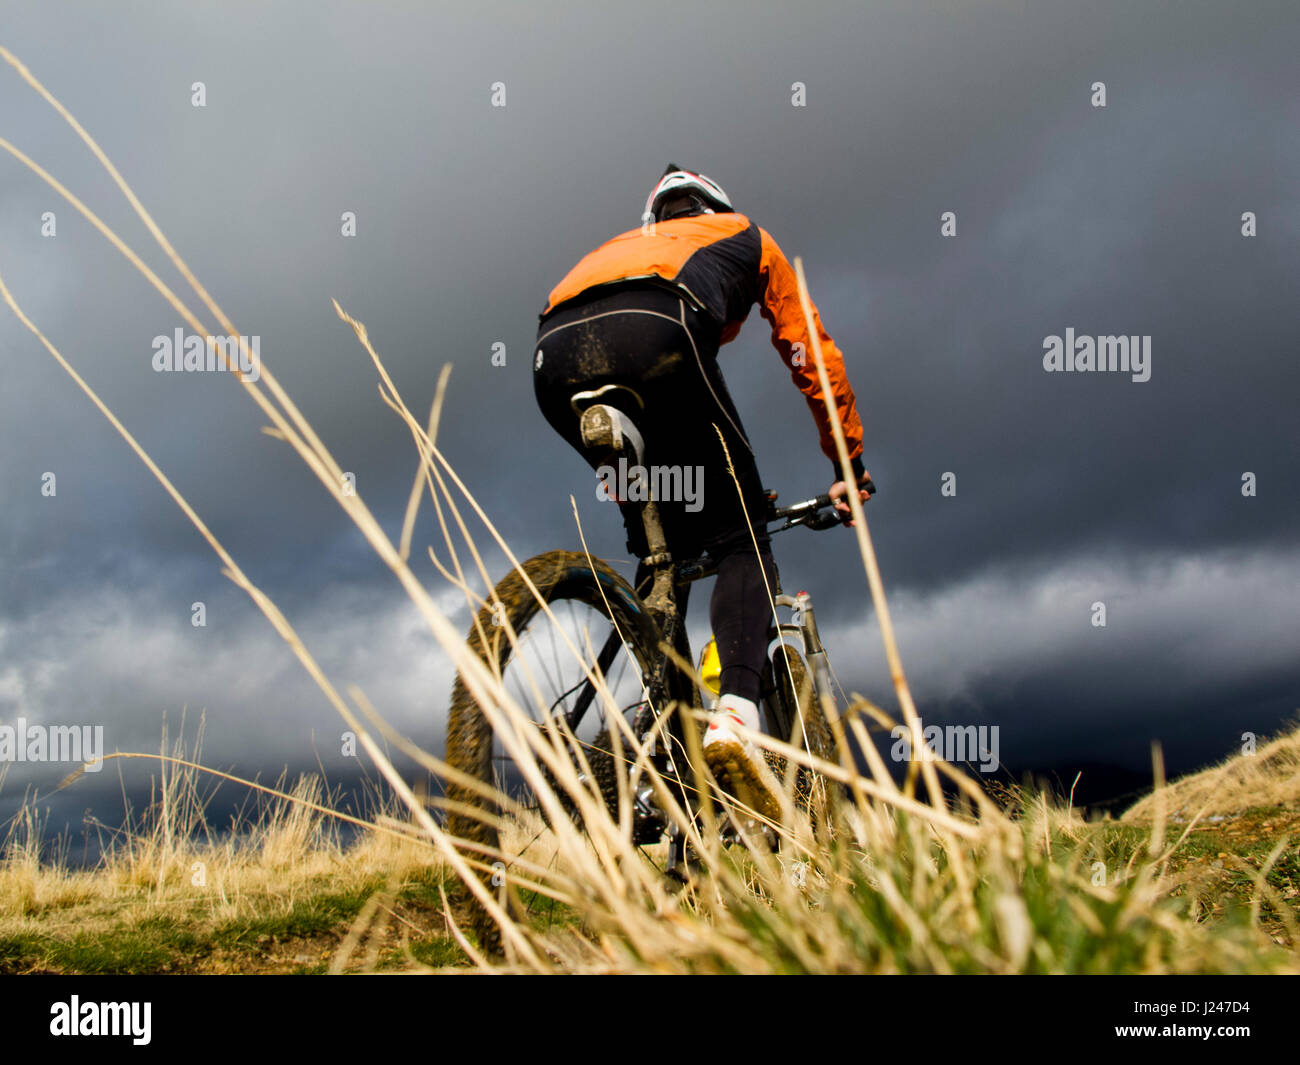 Mountain Bike rider under a stormy sky - Stock Image